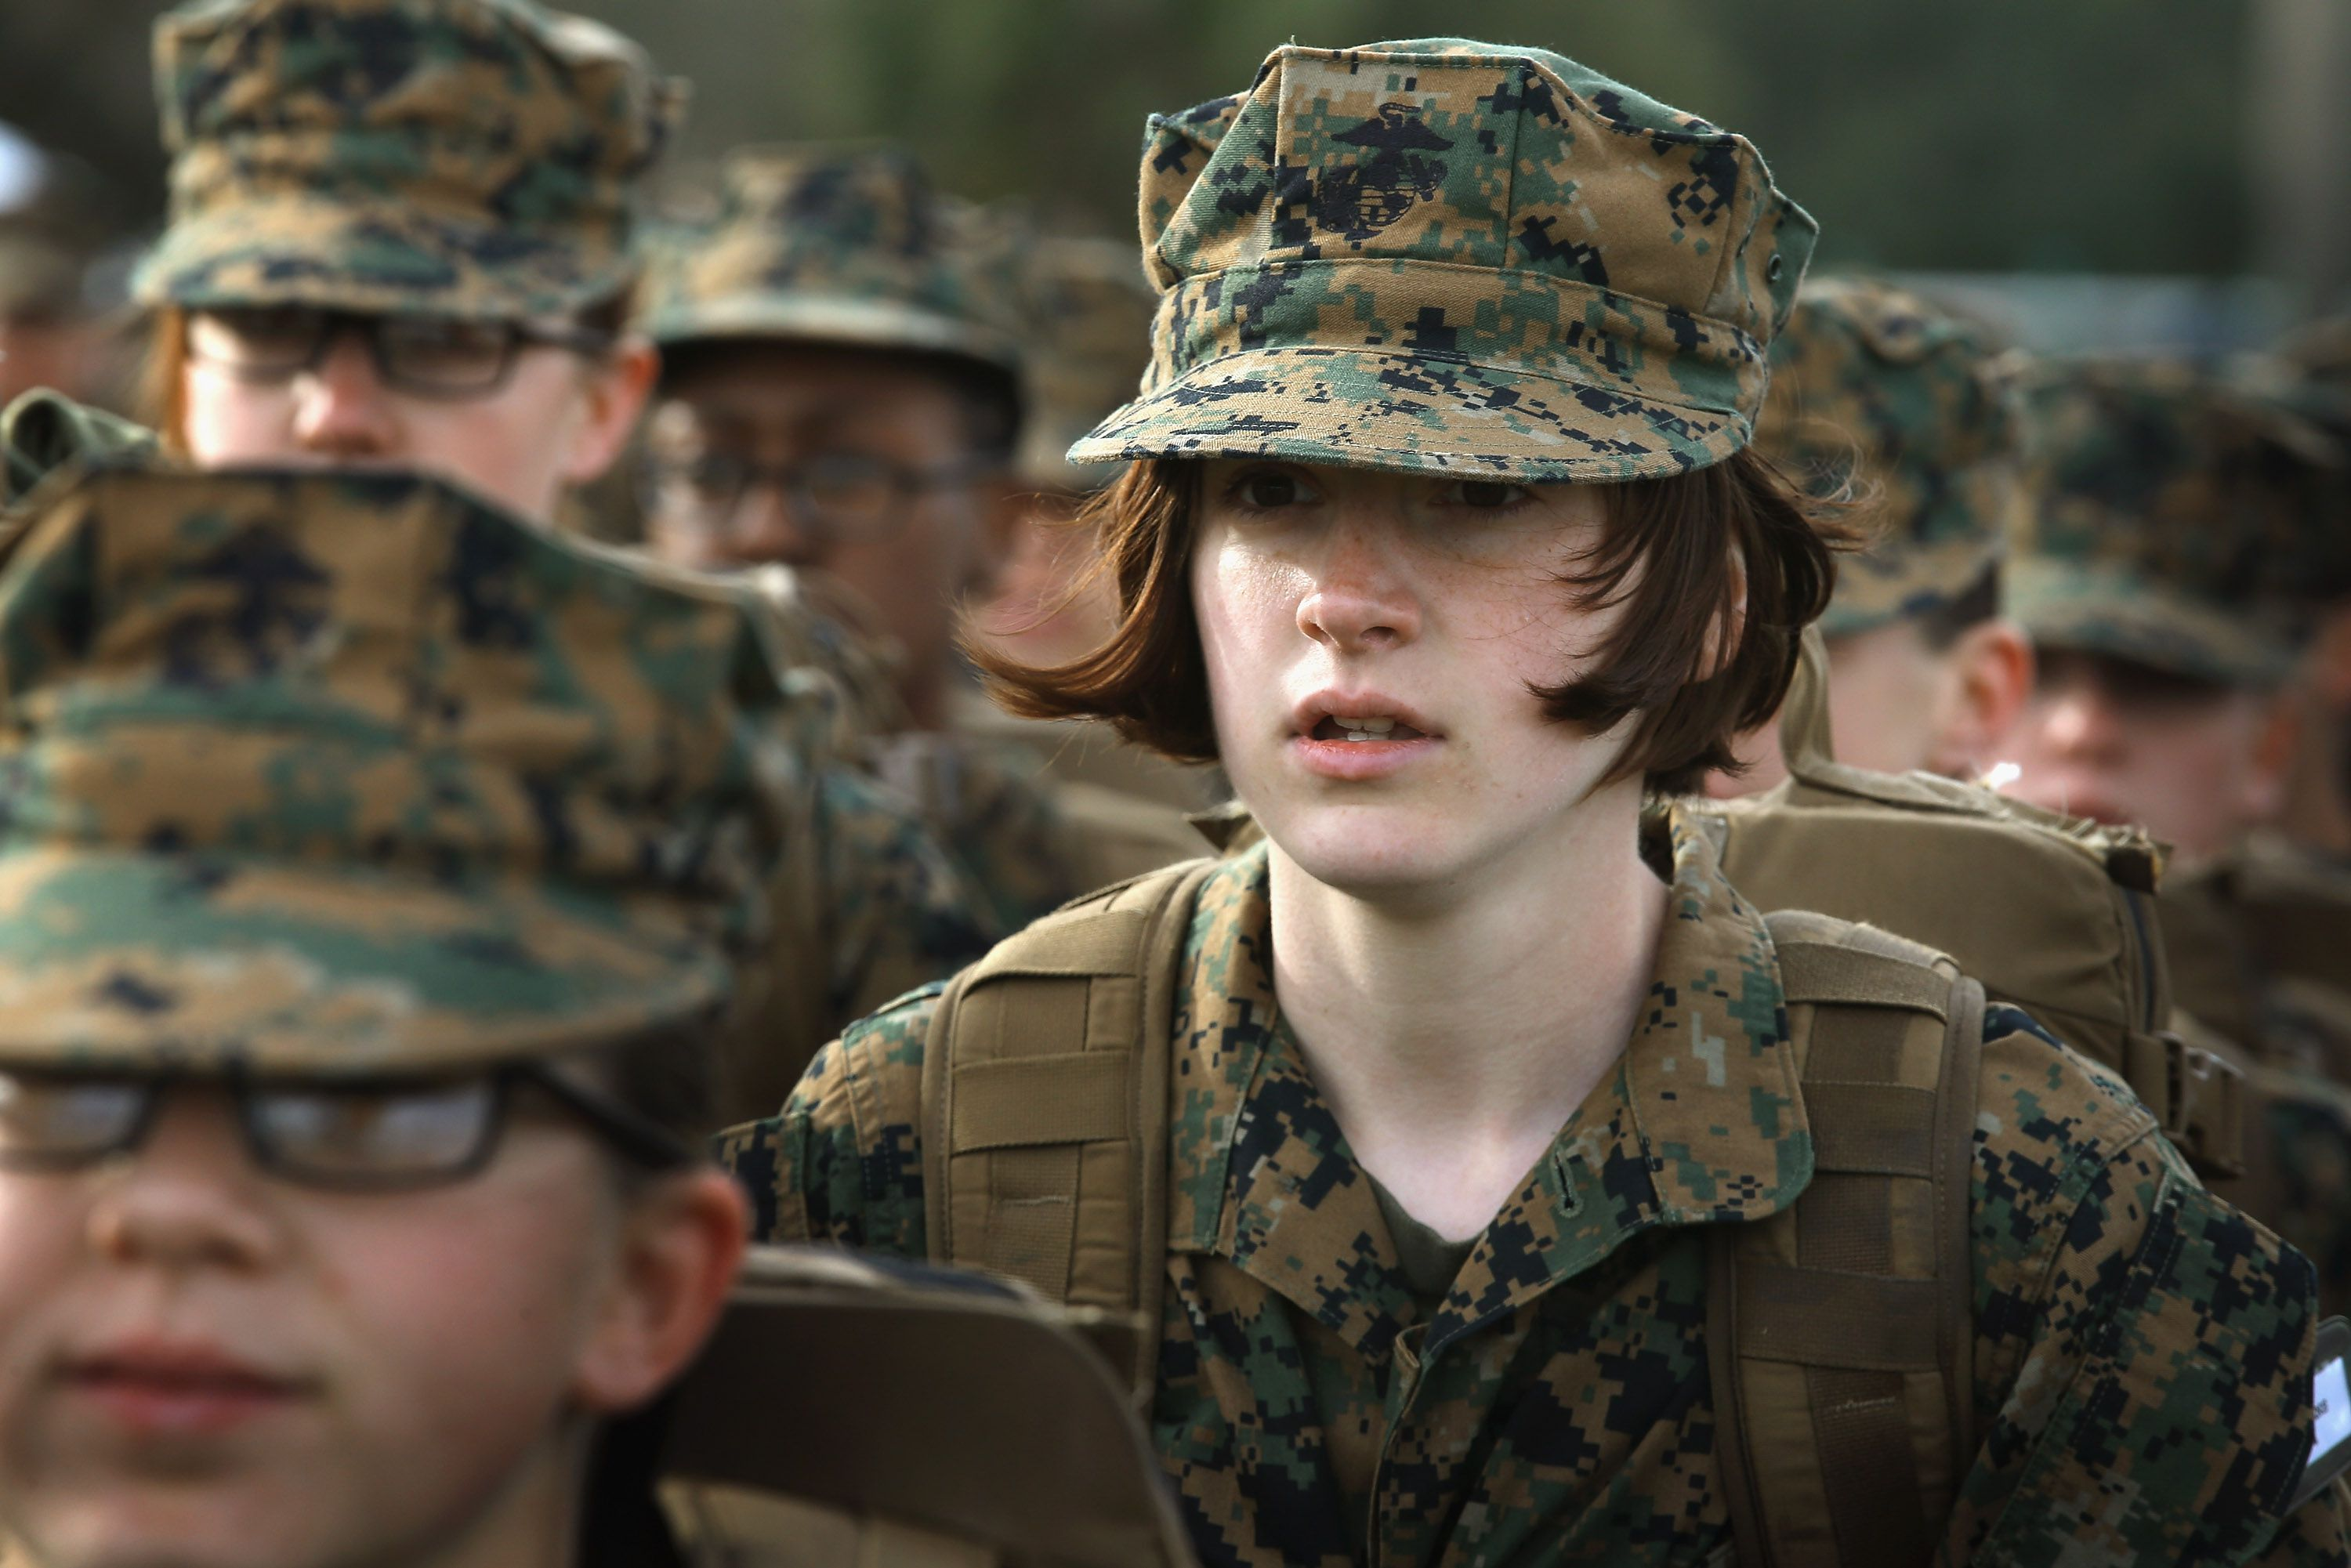 Things To Consider Before Joining The Marine Corps